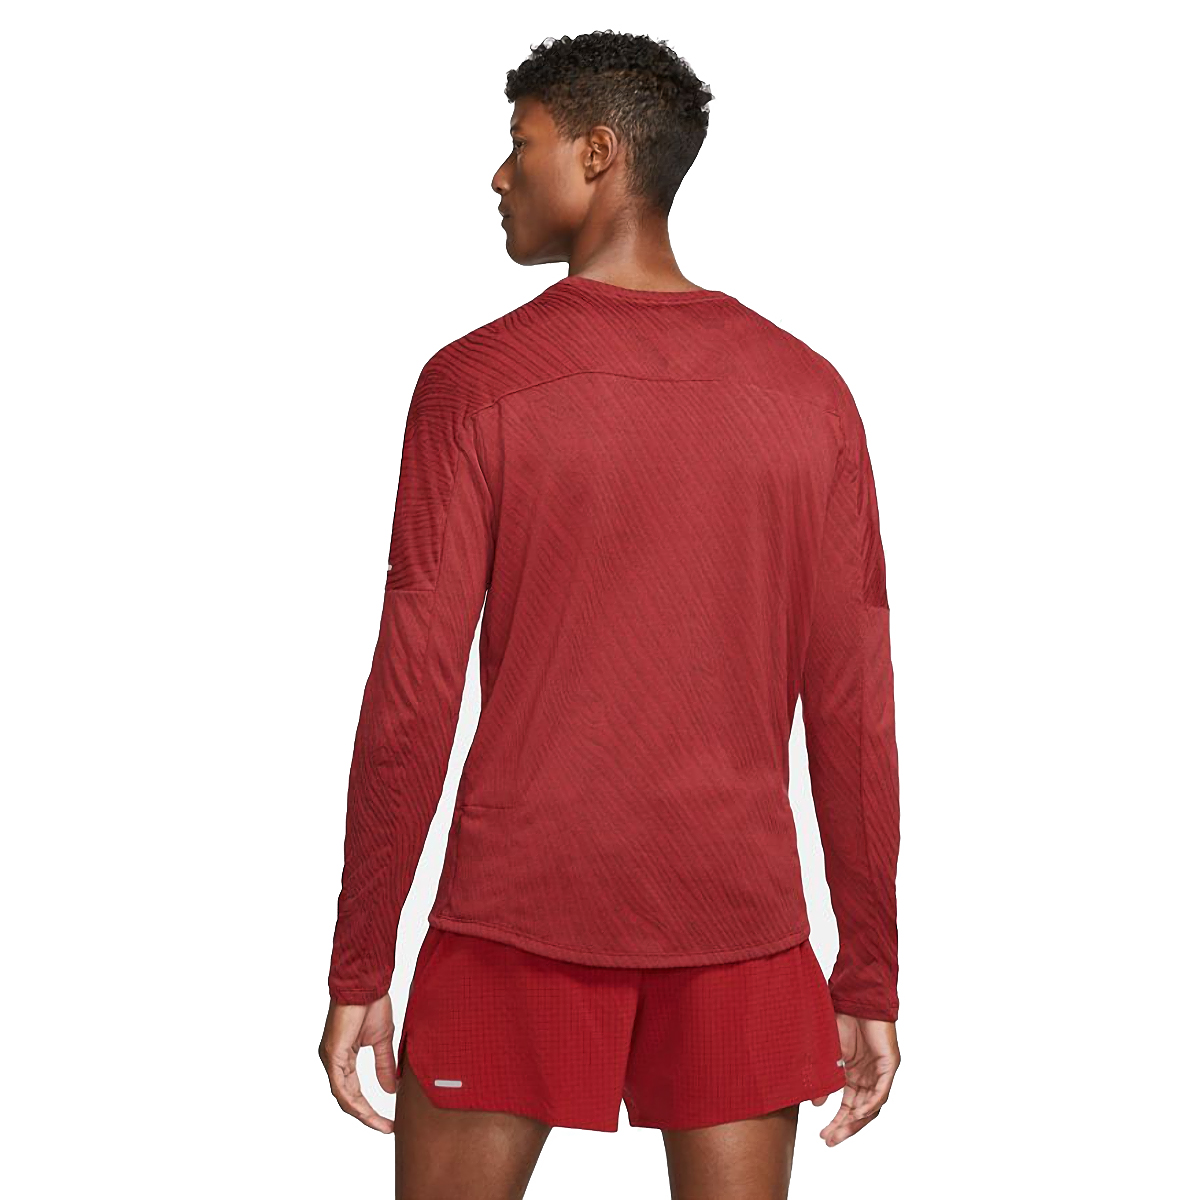 Men's Nike Dri-FIT Element 1/2-Zip Trail Running Top - Color: Dark Cayenne/Bronze Eclipse - Size: S, Dark Cayenne/Bronze Eclipse, large, image 2